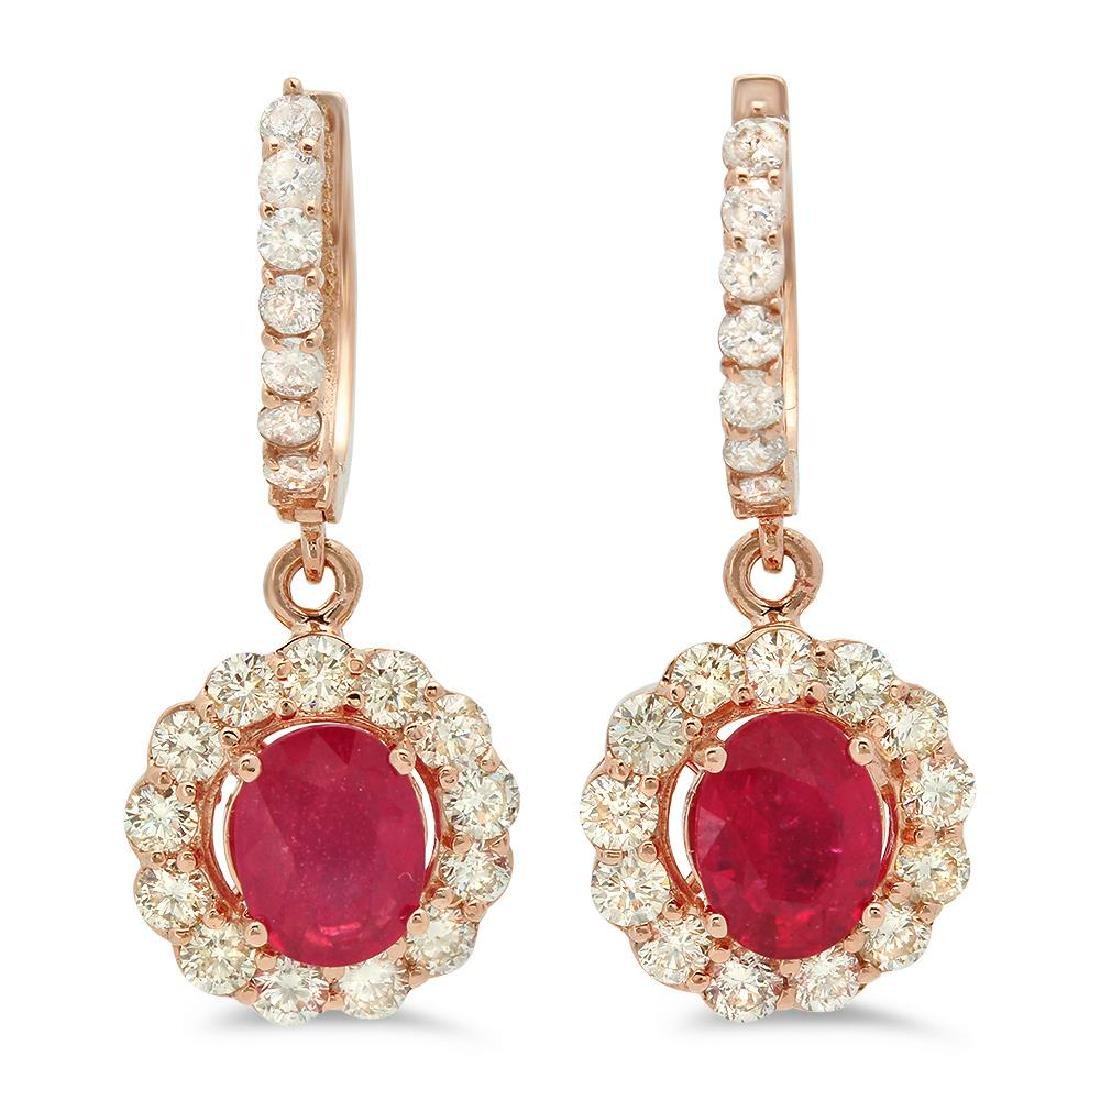 14K Gold 2.97ct Ruby 2.15cts Diamond Earrings